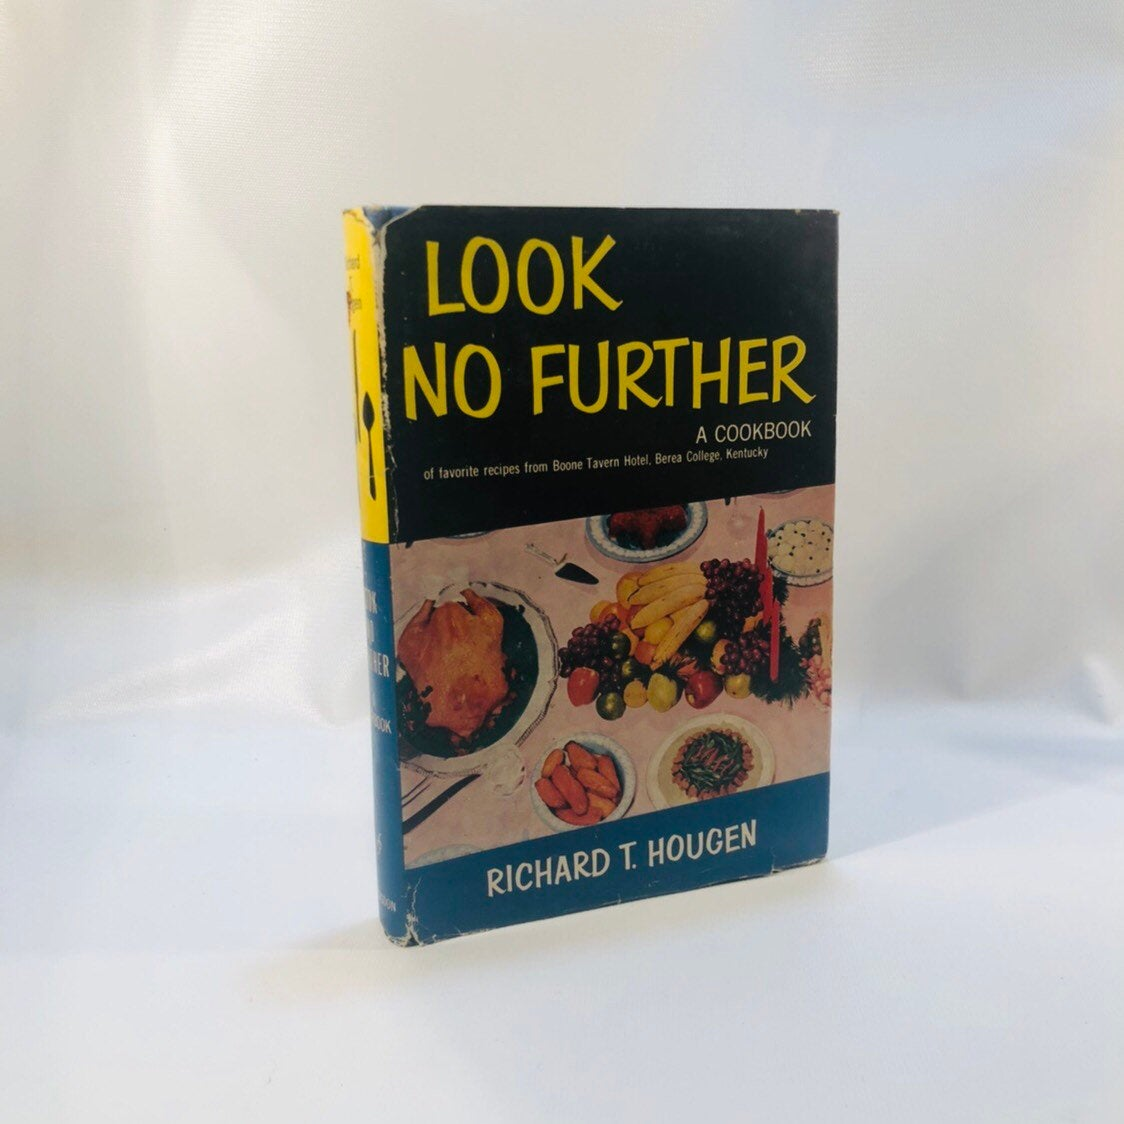 Look No Further by Richard T. Hougen Favorite Recipes from Boone Tavern Hotel Berea College Kentucky 1955